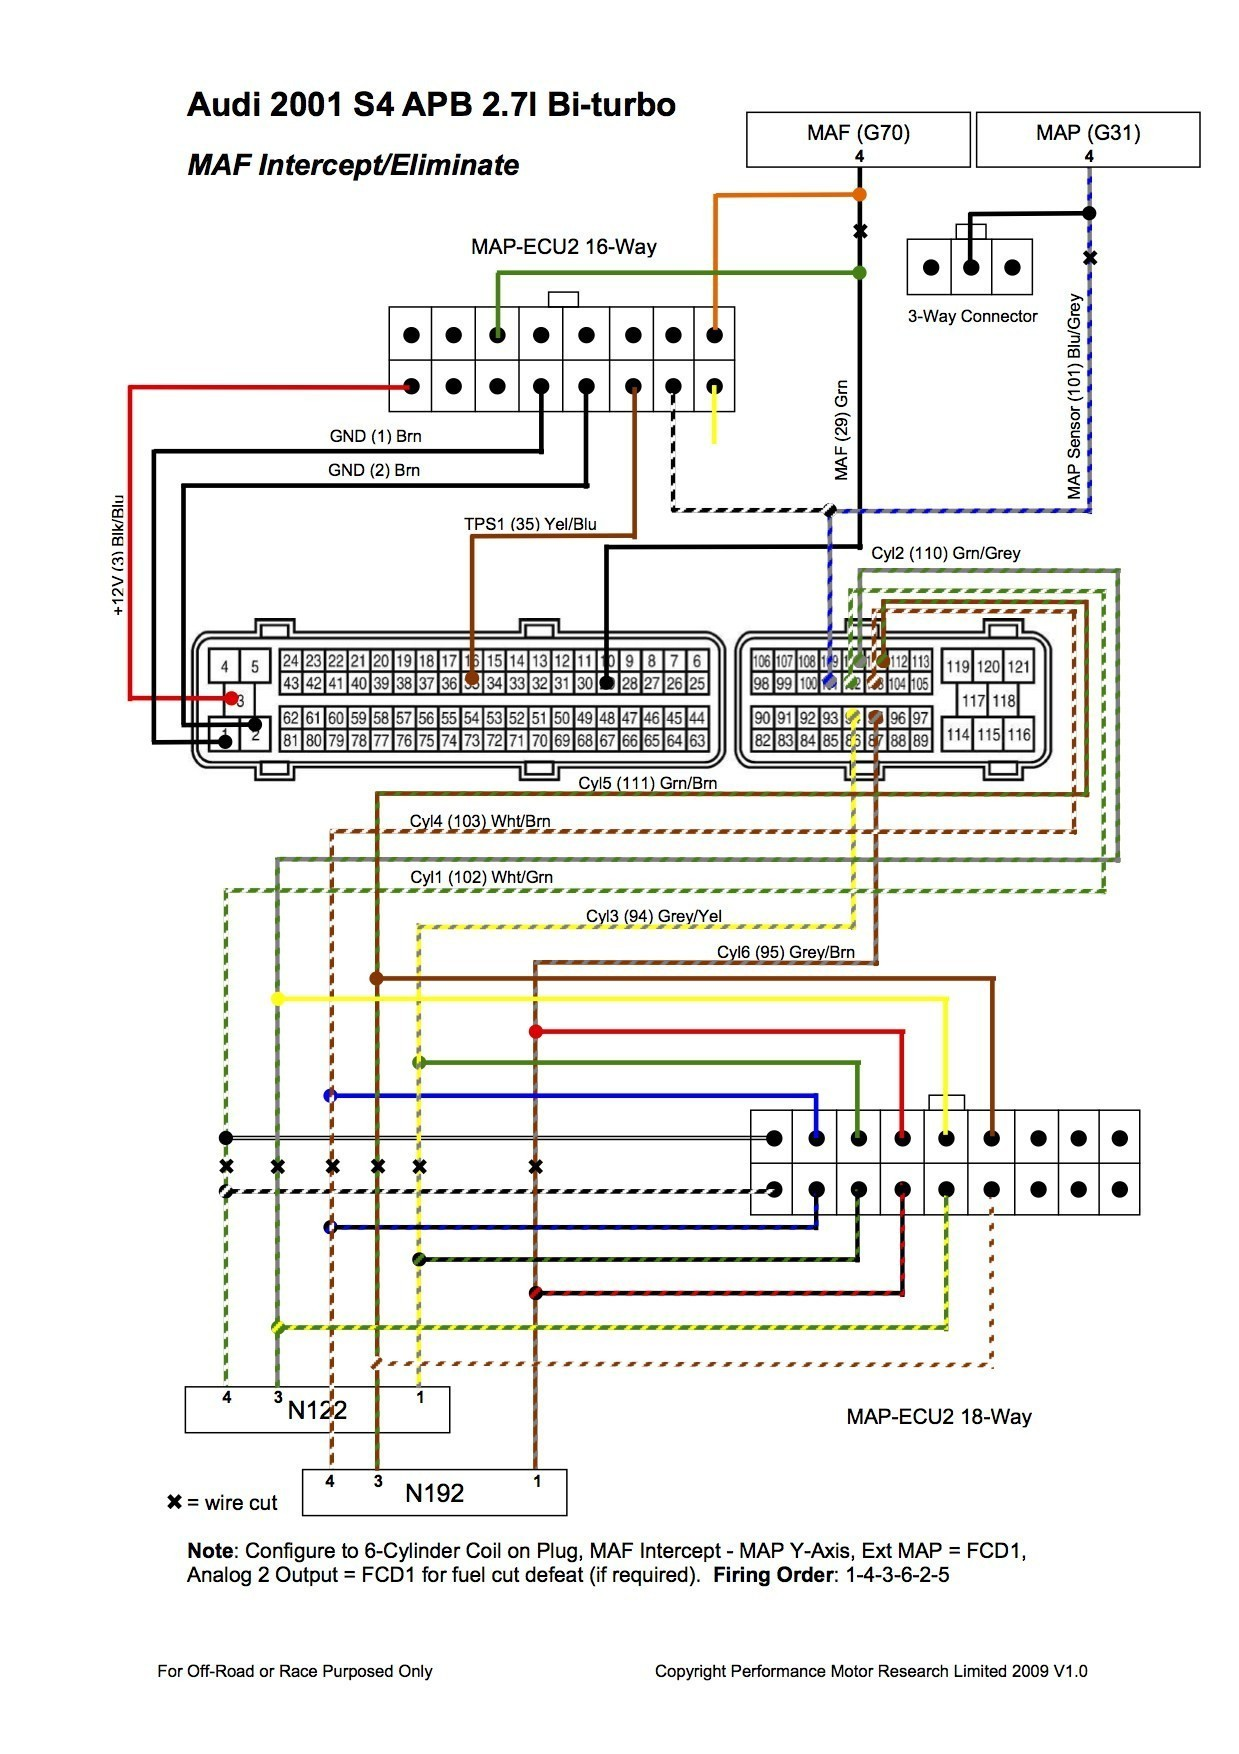 Kenwood Kdc-108 Stereo Wire Diagram Gt 6740] Kdc 138 Wiring Diagram Also Kenwood Car Stereo Kdc Of Kenwood Kdc-108 Stereo Wire Diagram